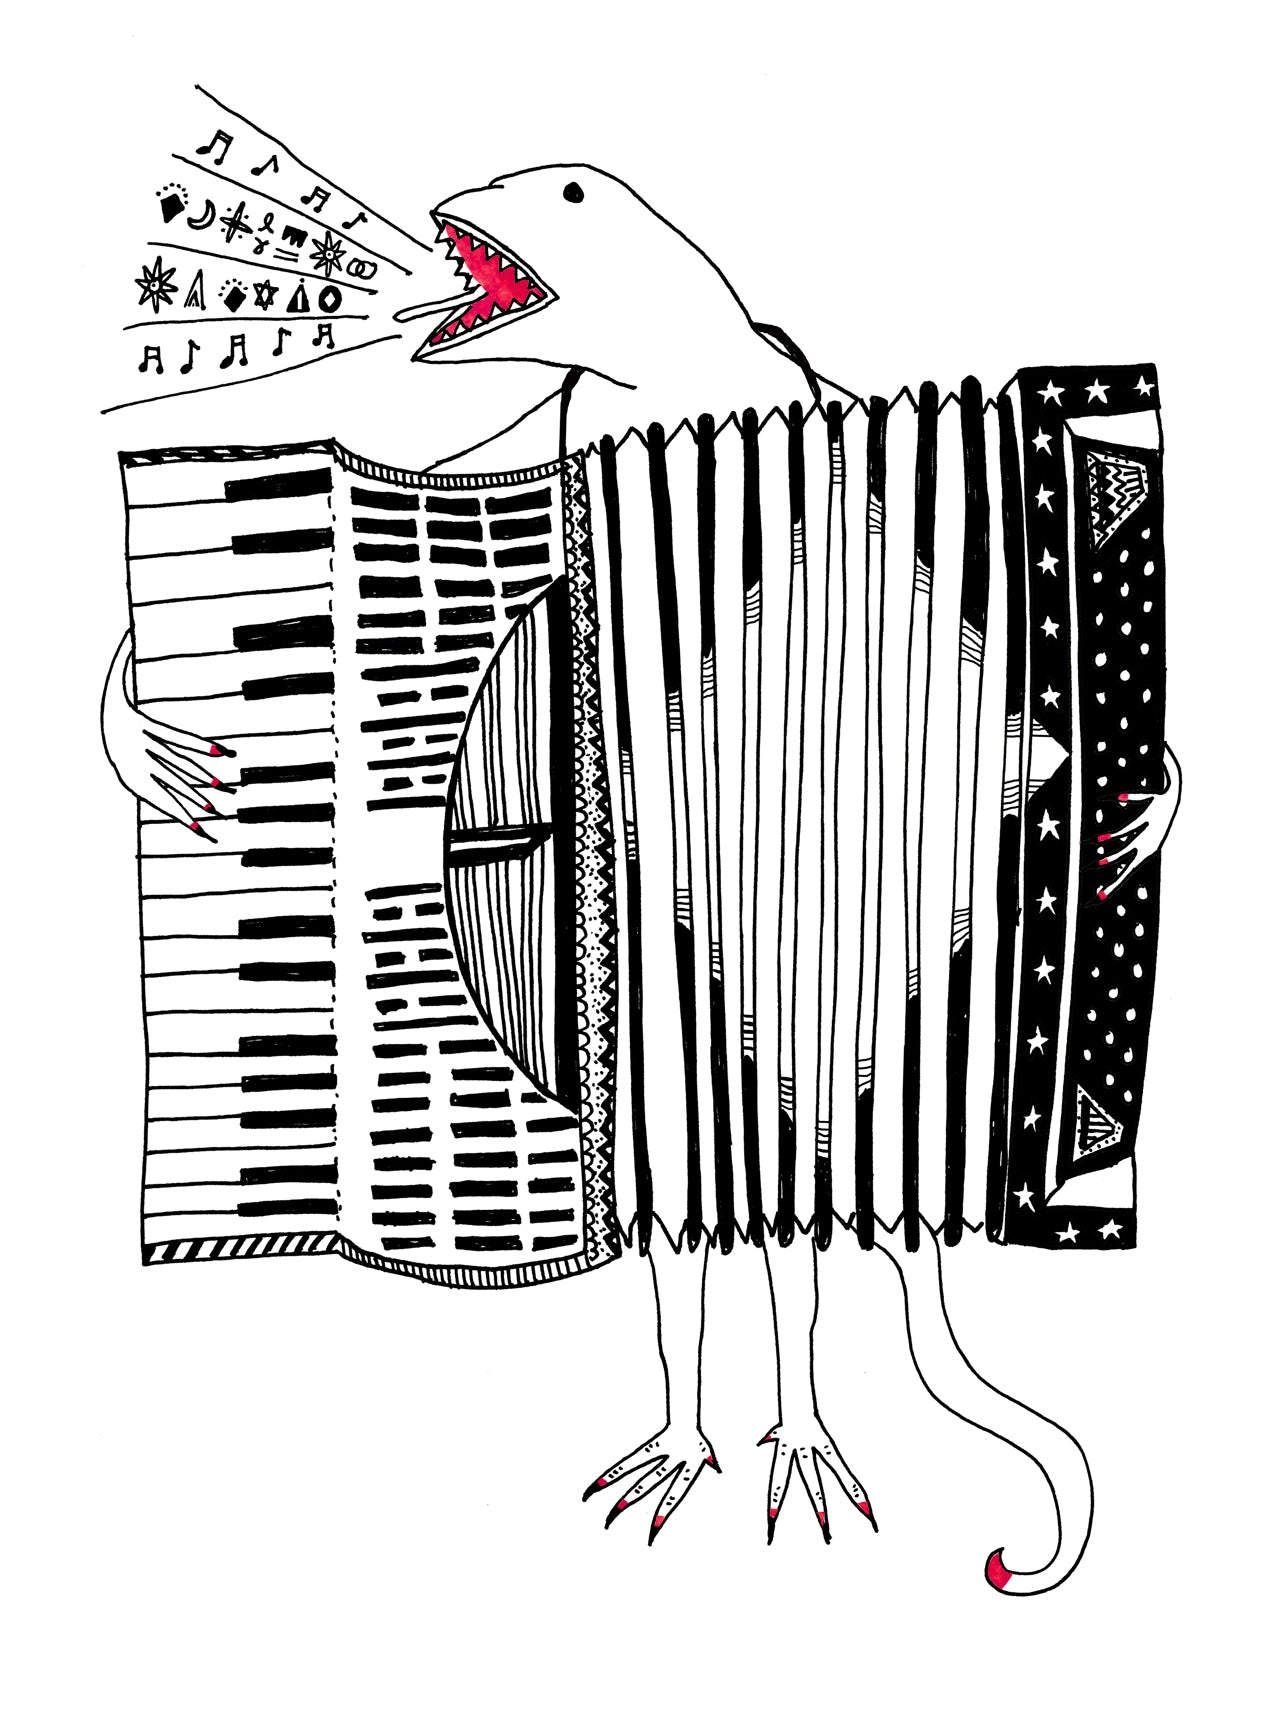 Accordion of Unexpected Fortunes Pillowcase